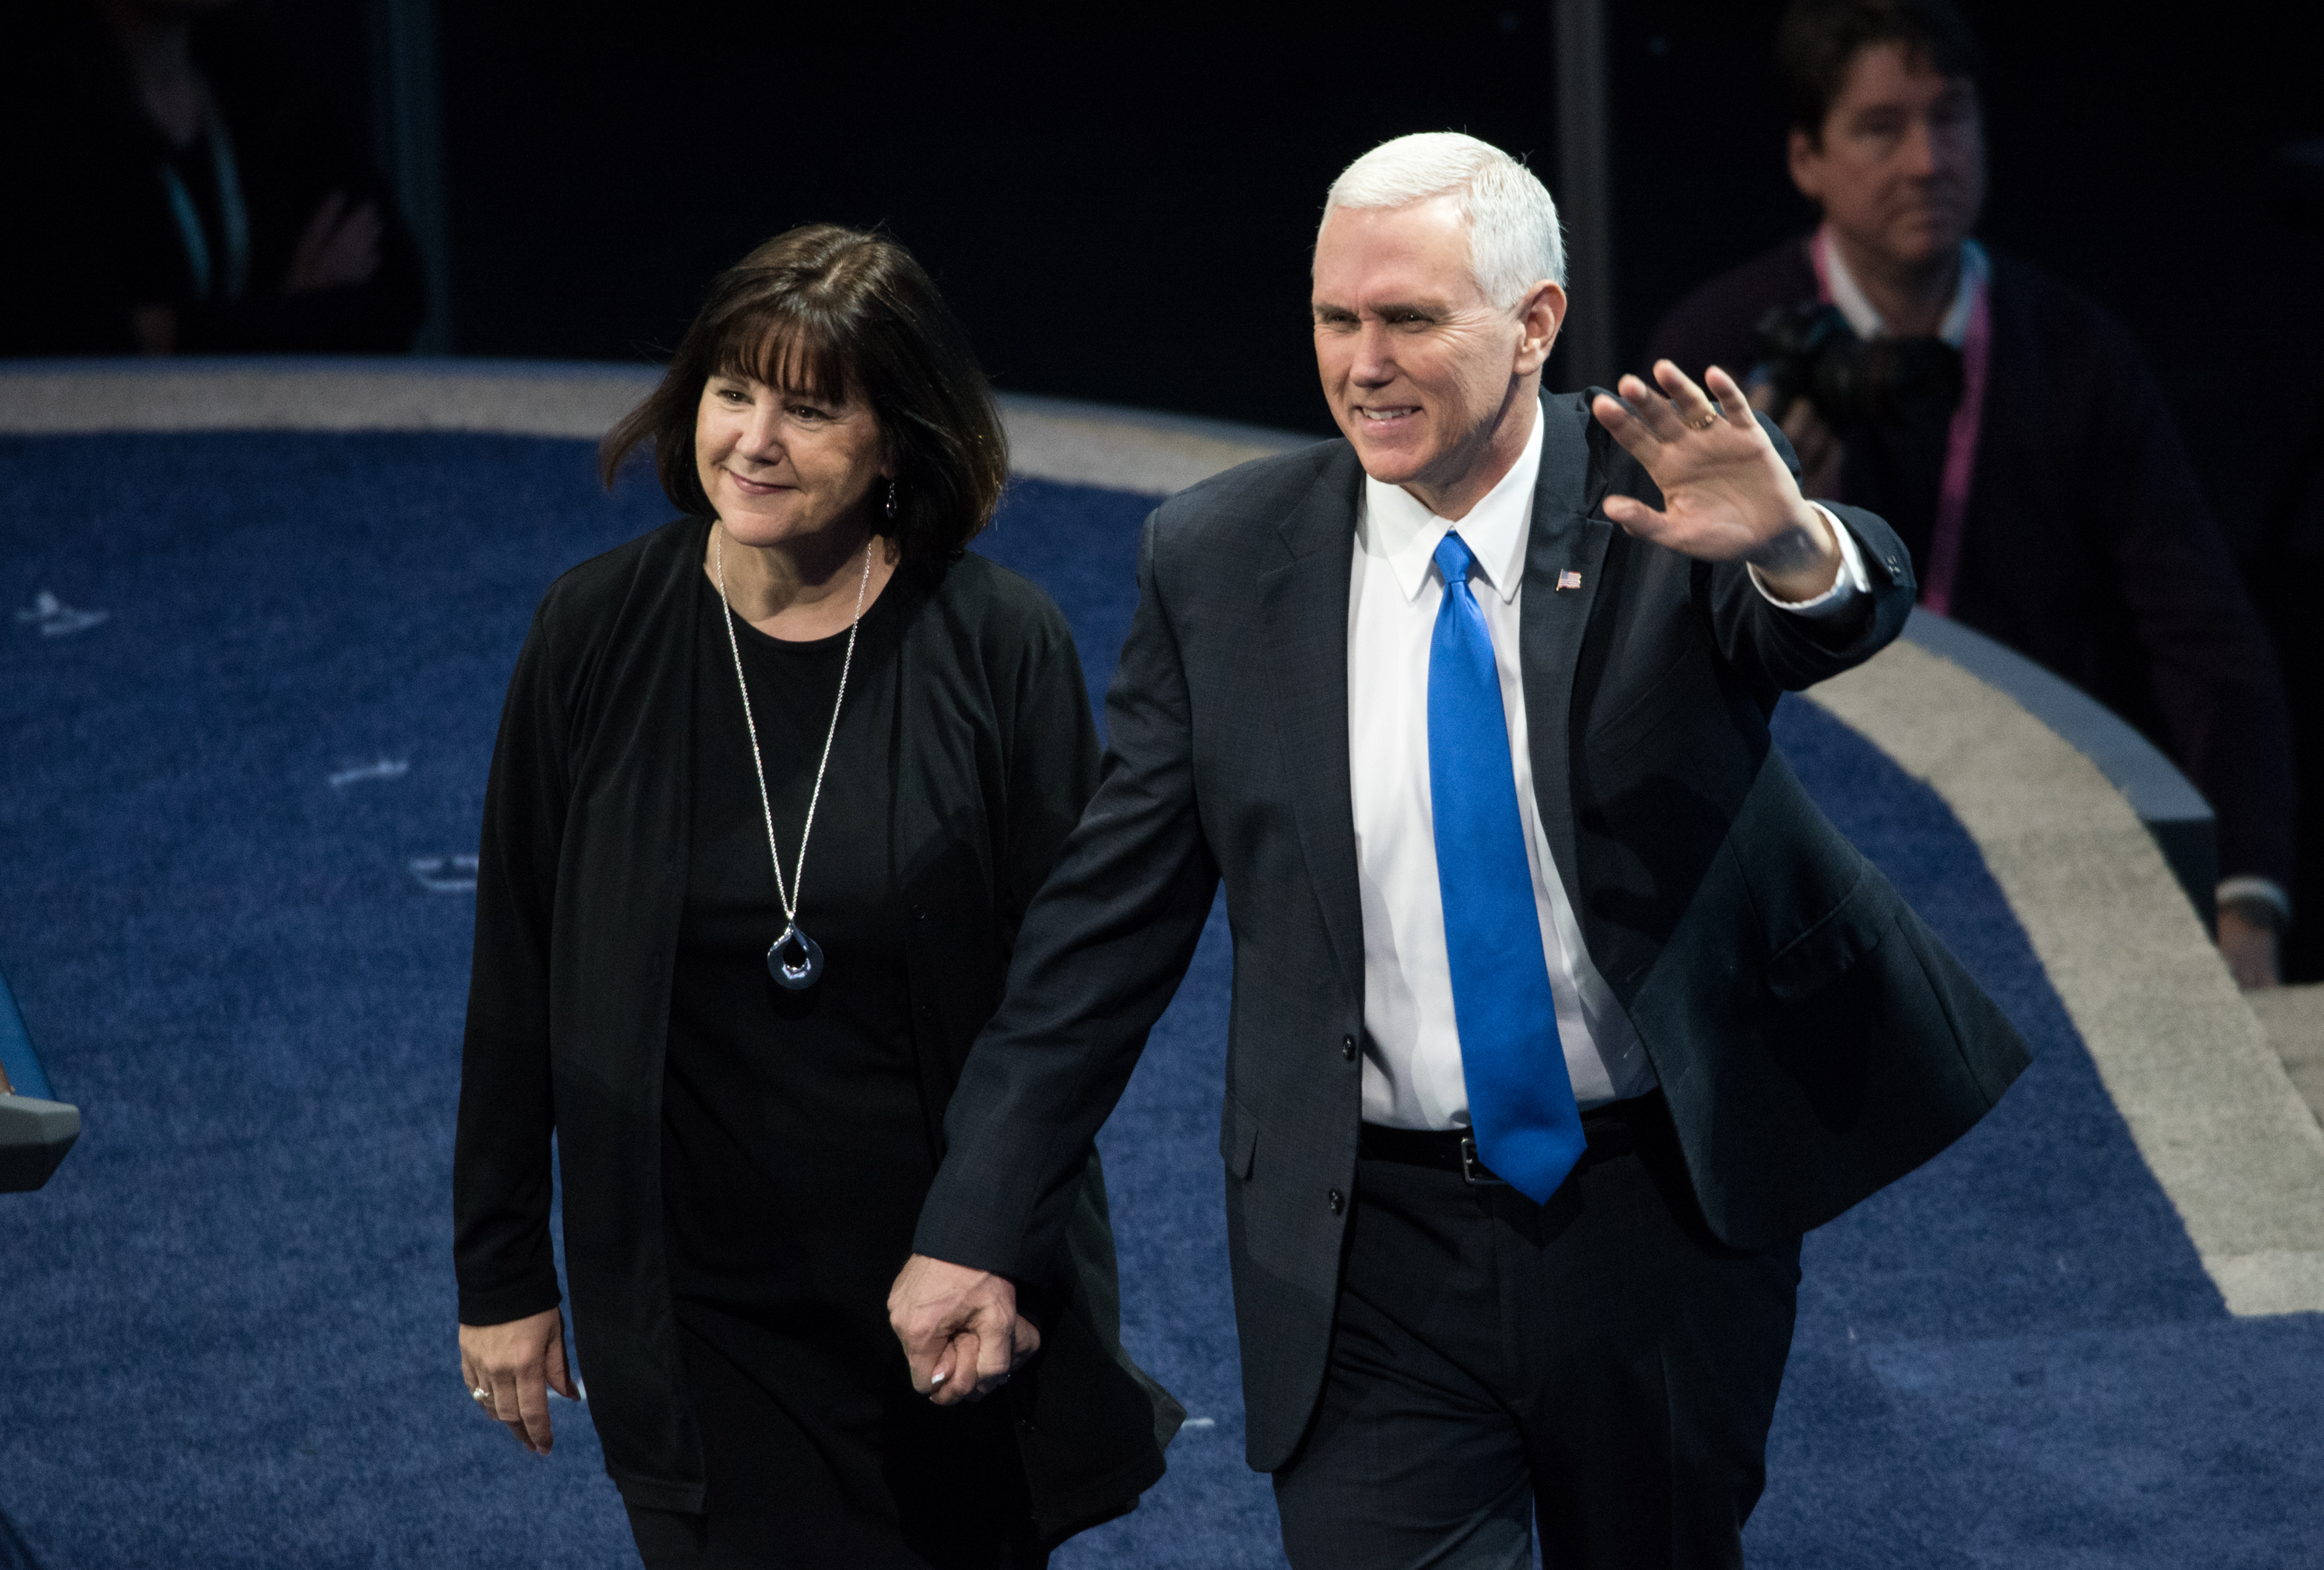 U.S. Vice President Mike Pence, right, and his wife Karen Pence are introduced at the the AIPAC 2017 Convention on March 26, 2017, in Washington, D.C.